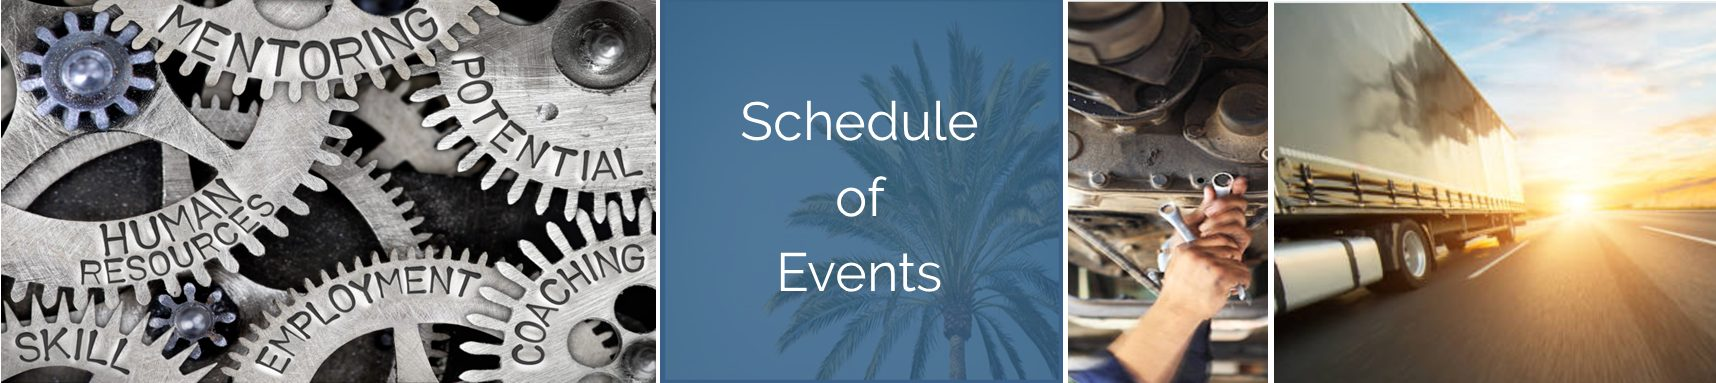 Annual Councils conference webpage SCHEDULED Events FINAL 8-7-21